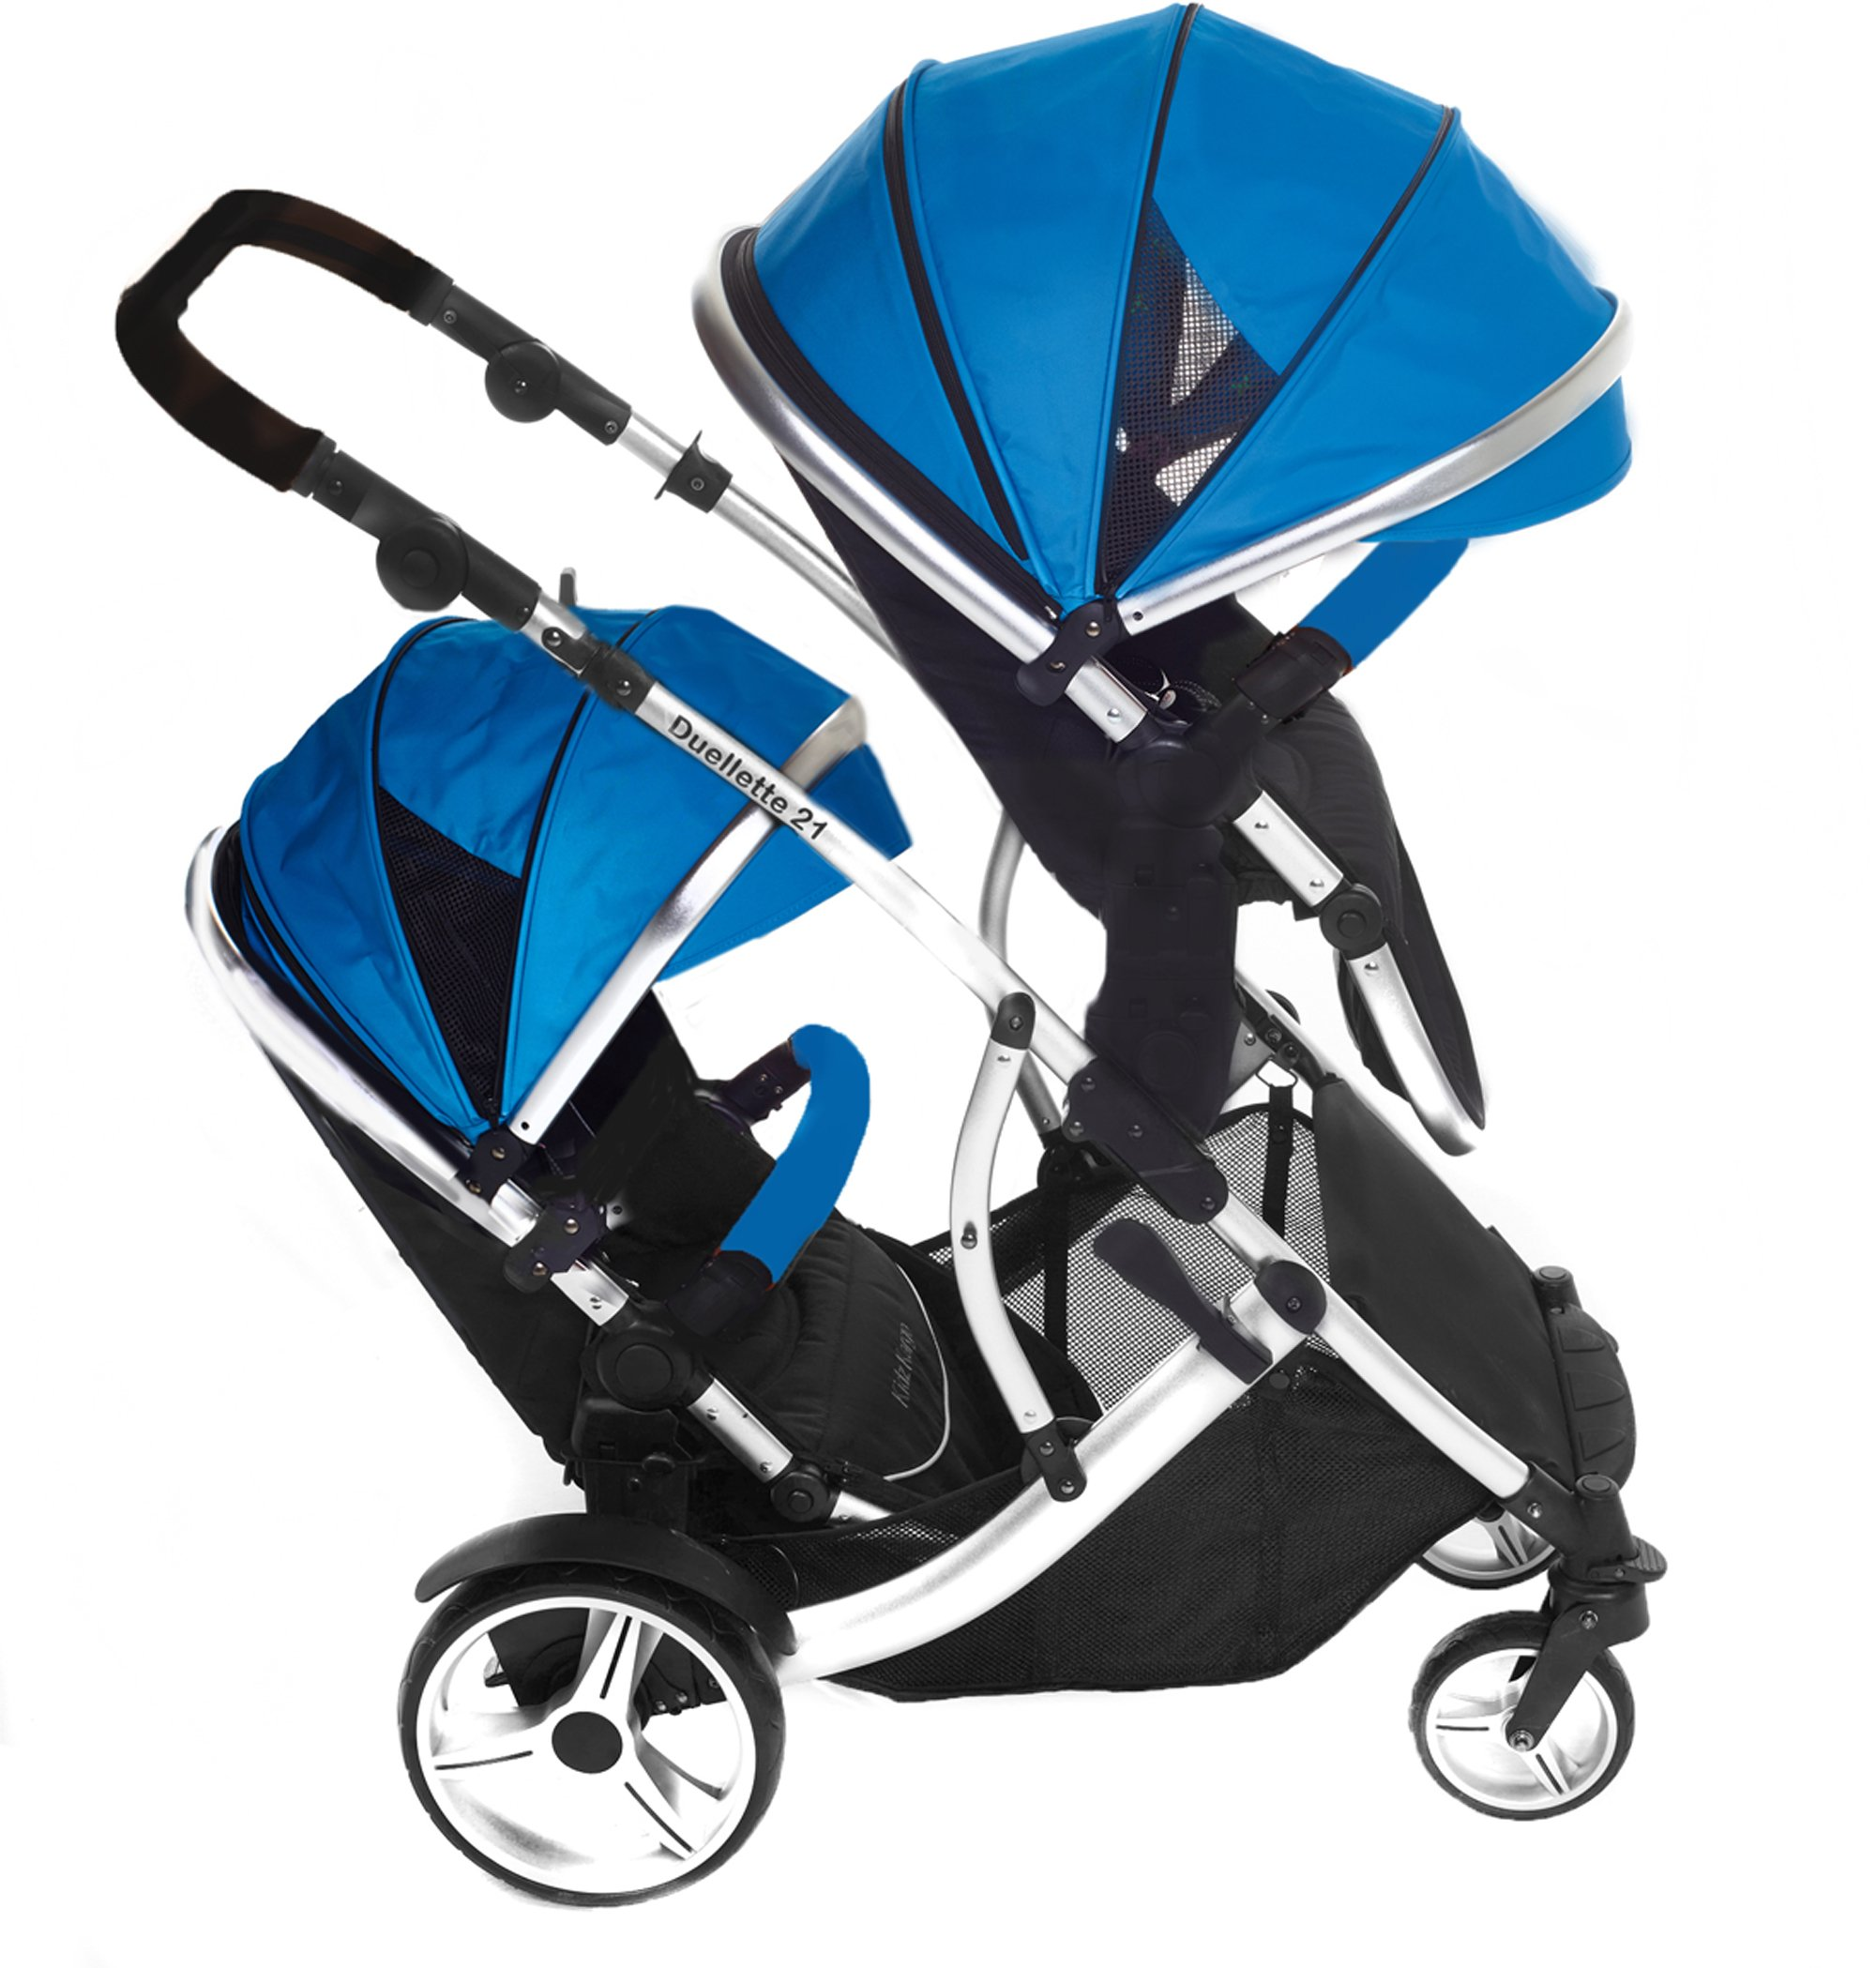 Duellette 21 BS Twin Buggy with Changing Bag and Accessories, Raincovers and 2 Footmuffs Teal Mist Kids Kargo Various seat positions. Both seats can face mum (ideal for twins) Suitability Newborn Twins (if used with car seats) or Newborn/toddler. Accommodates 1 or 2 car seats 3